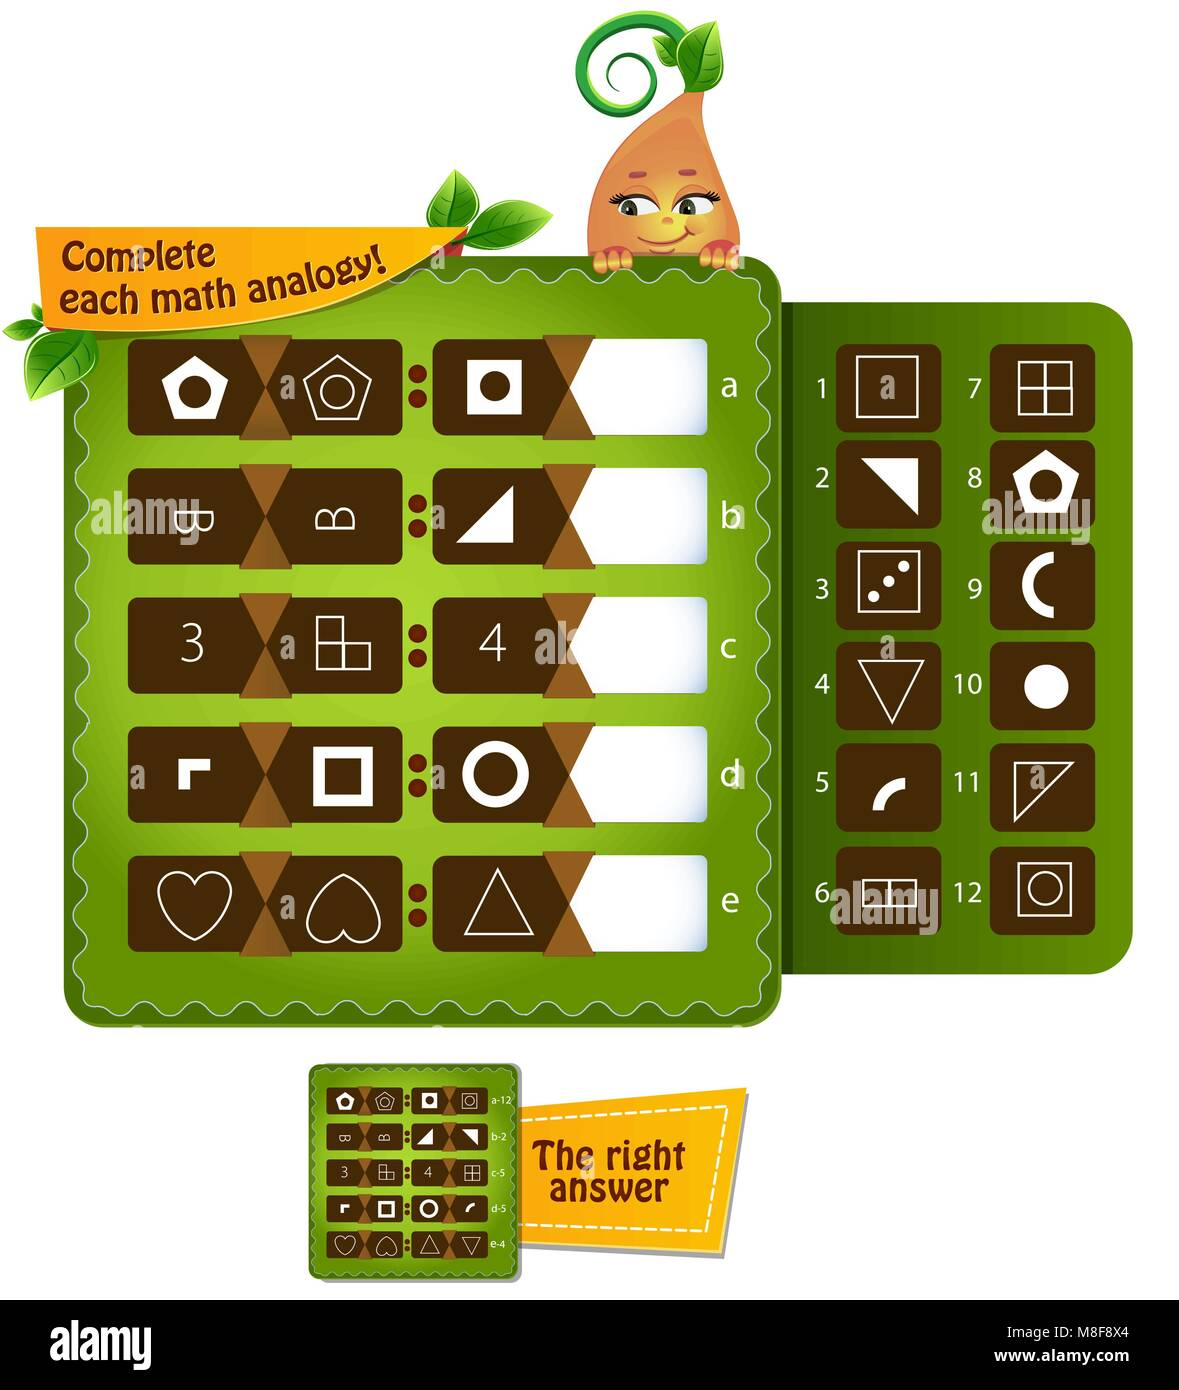 educational game for kids and adults development of logic, iq. Complete each math analogy - Stock Image